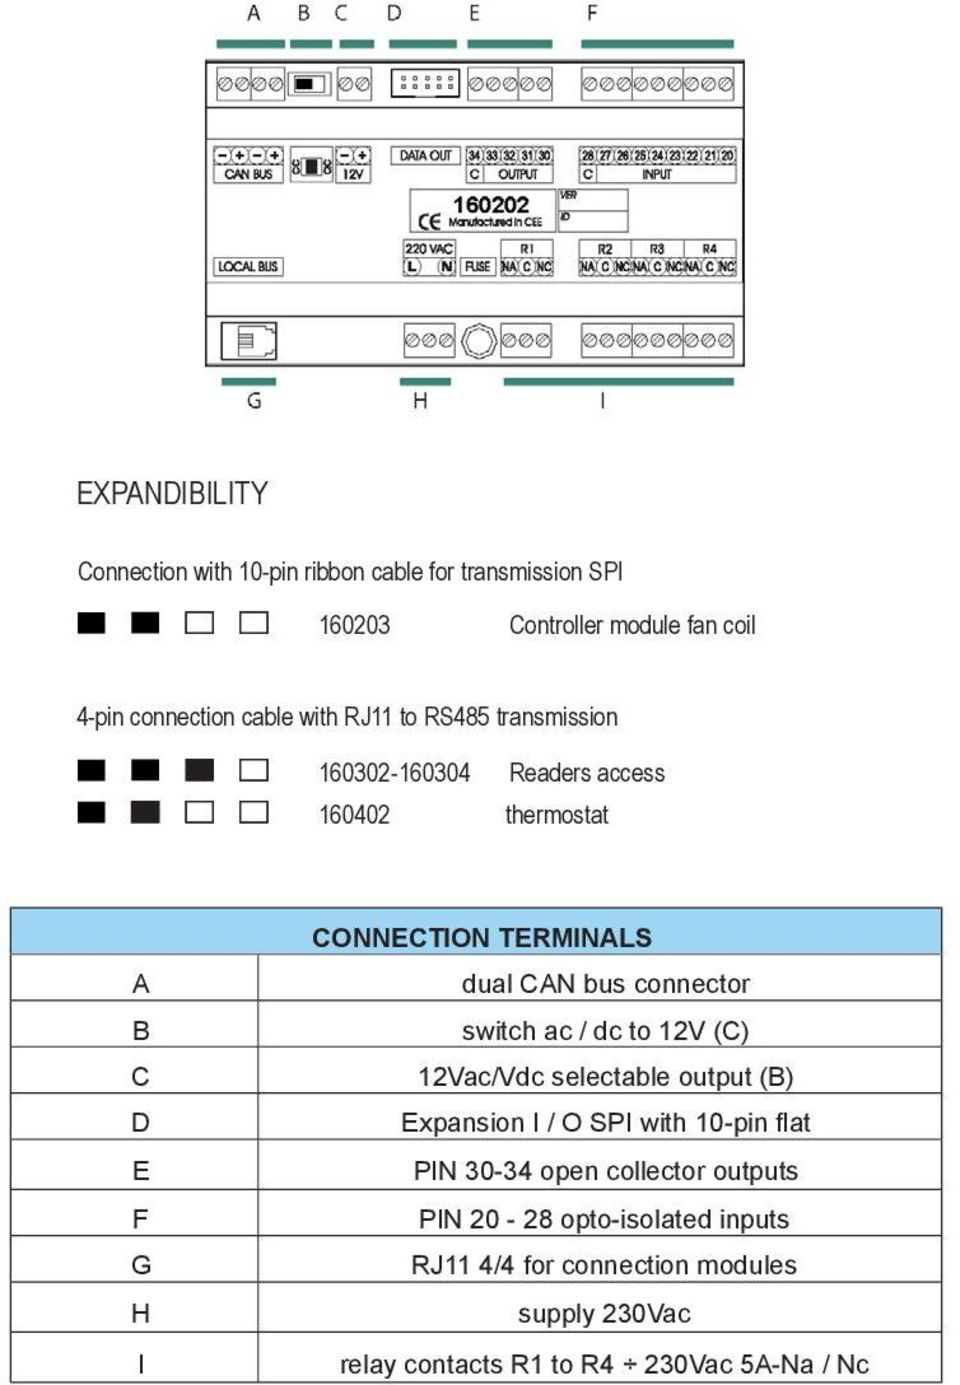 bus connector switch ac / dc to 12V (C) 12Vac/Vdc selectable output (B) Expansion I / O SPI with 10-pin flat PIN 30-34 open